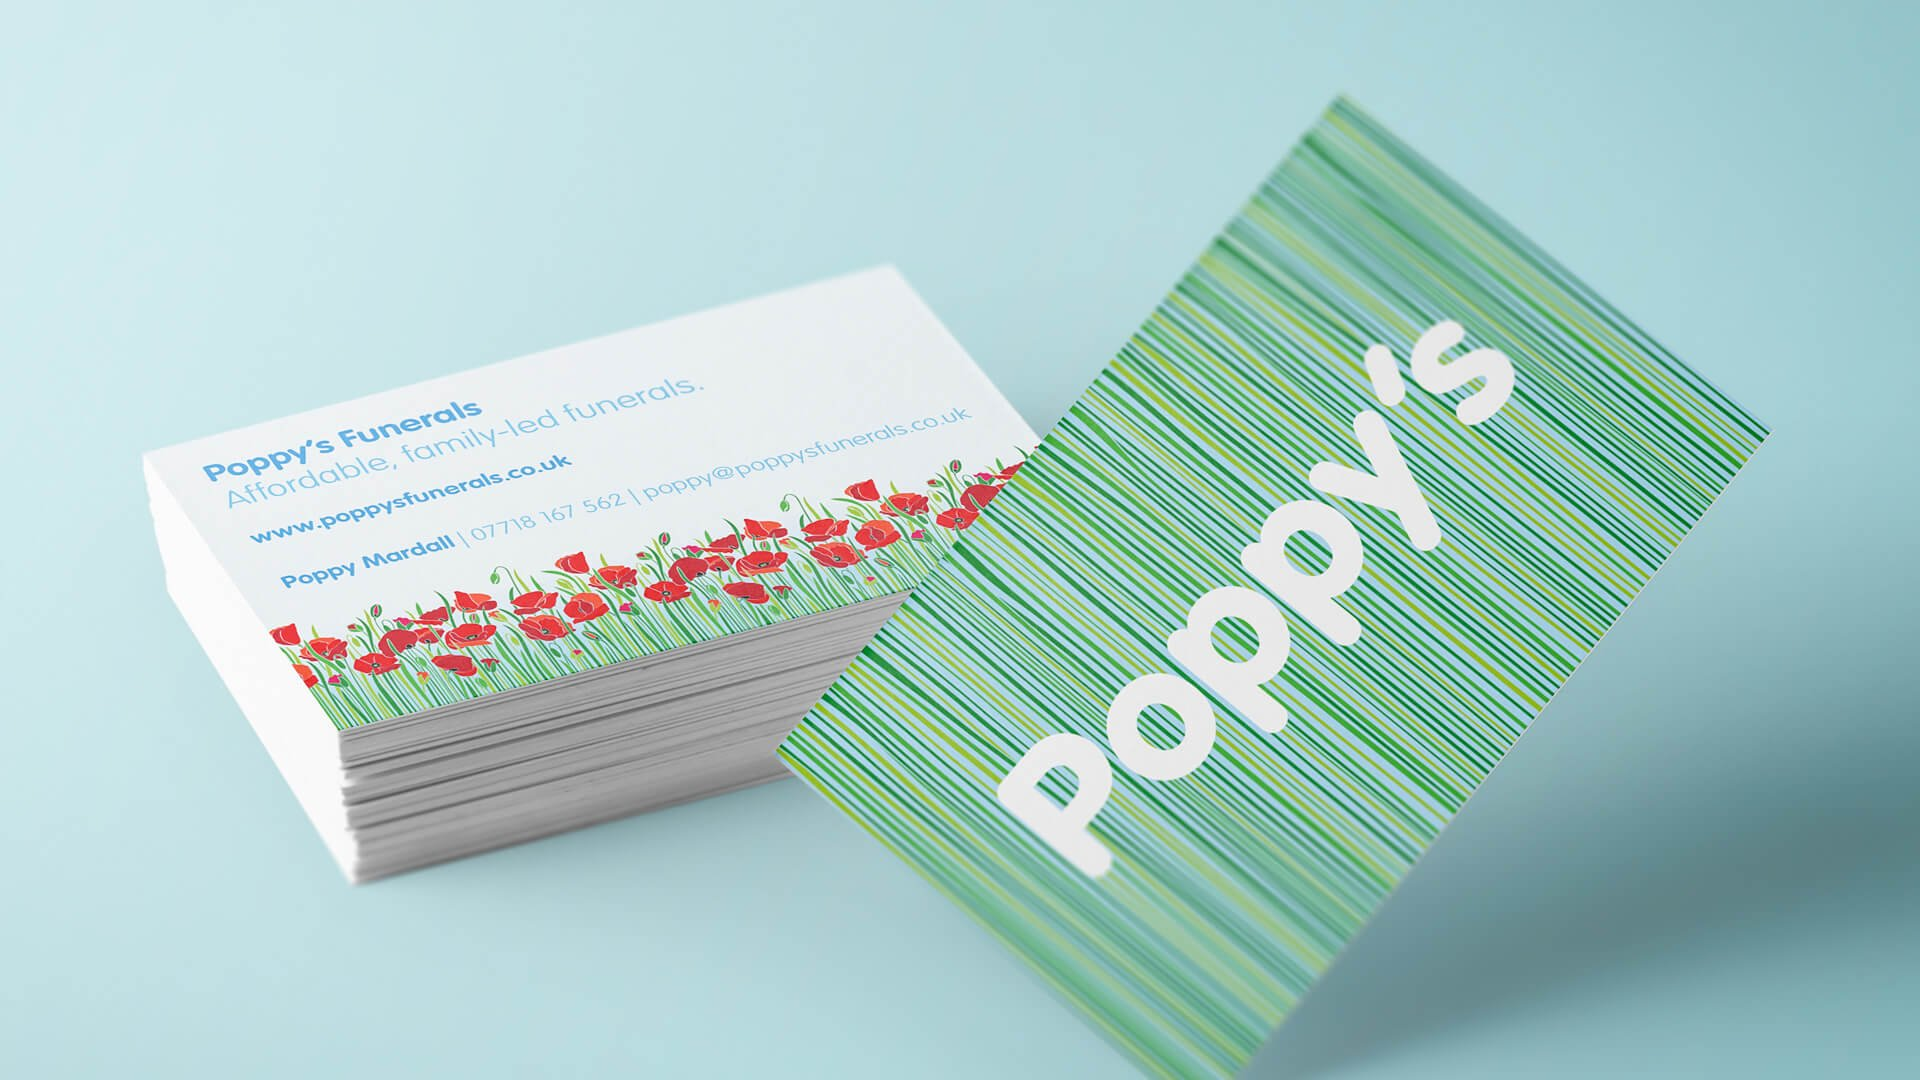 Poppy's Funerals Business Cards